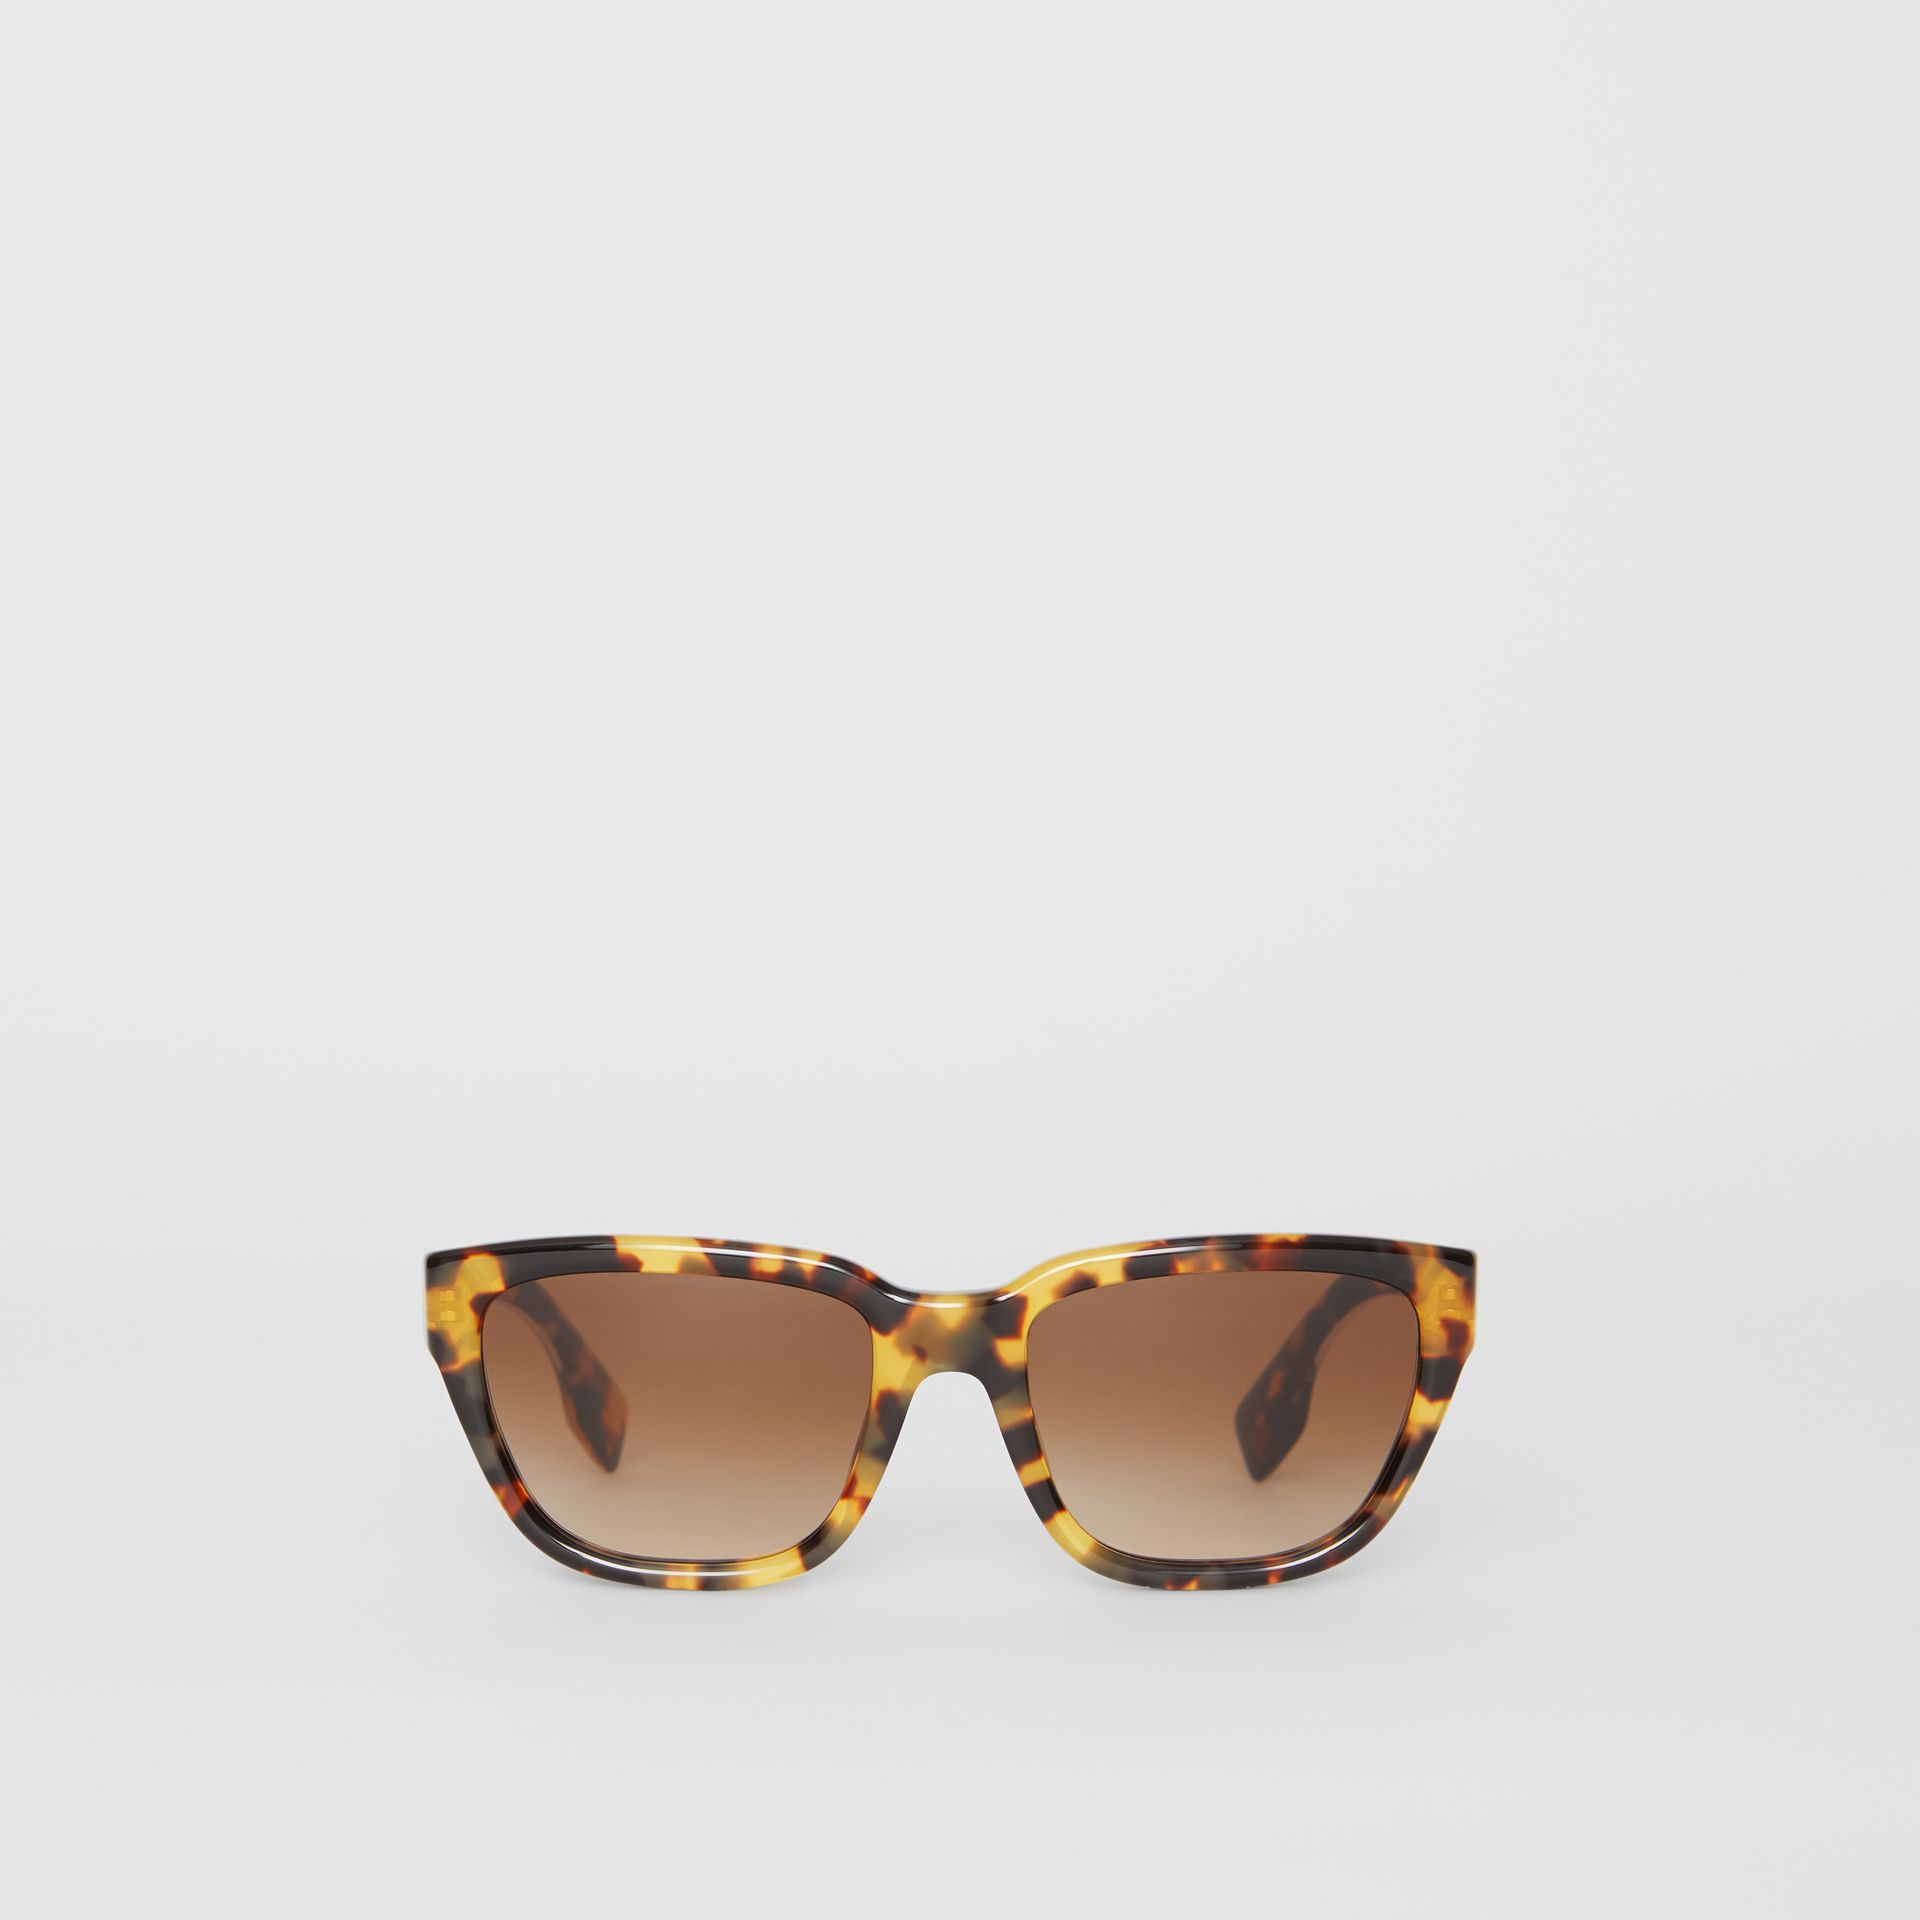 Square Frame Sunglasses in Tortoiseshell - Women | Burberry - gallery image 0